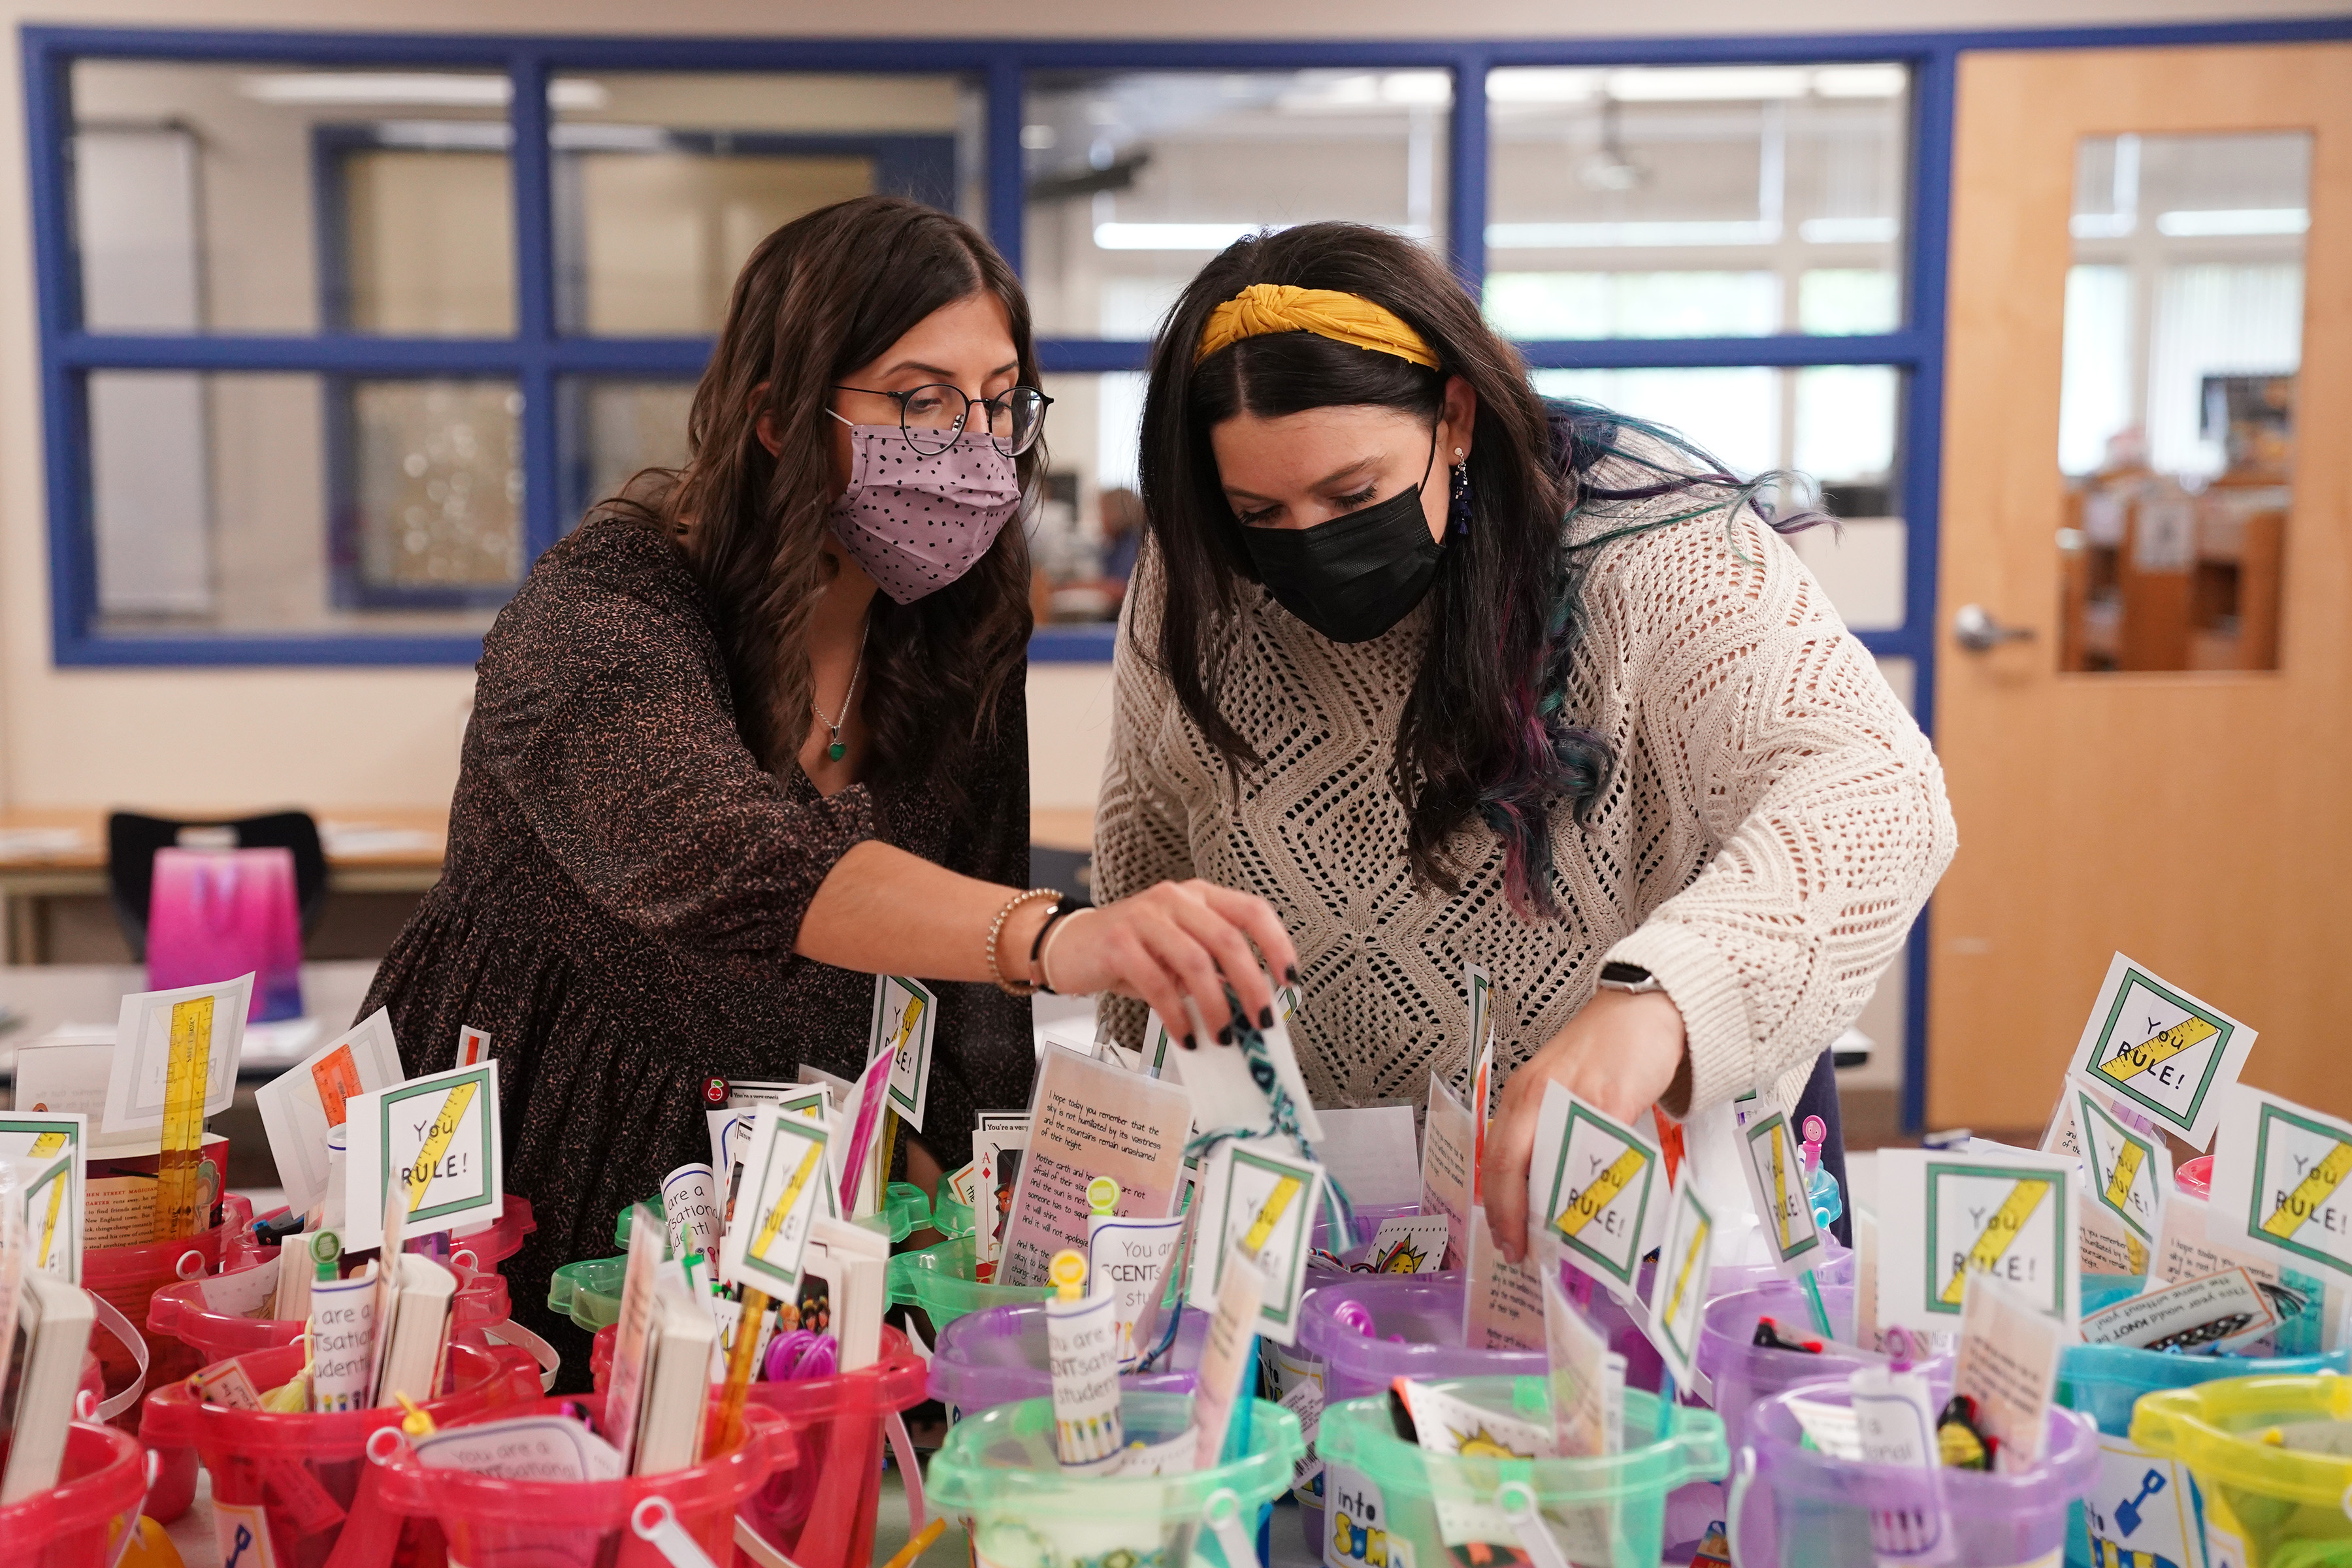 Emilee Vlasin, left, and Emily Wahlquist, both third grade teachers at Washburn Elementary, packed up end of the year gifts for their students.